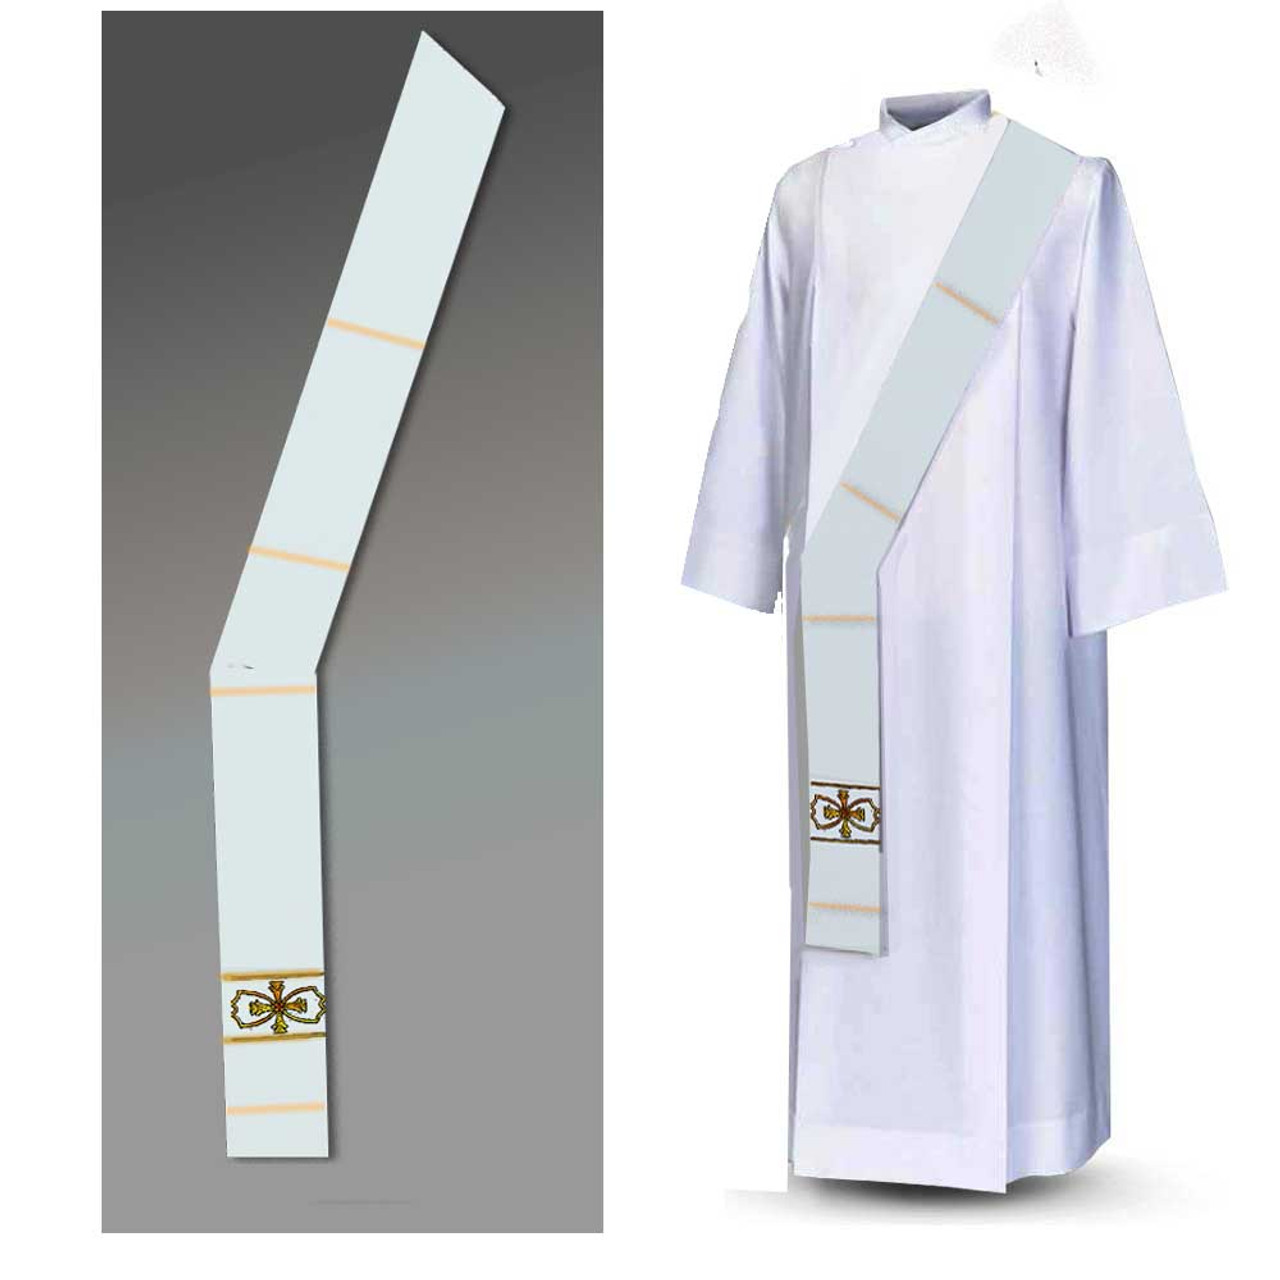 1152 Off-White Deacon Stole from Houssard